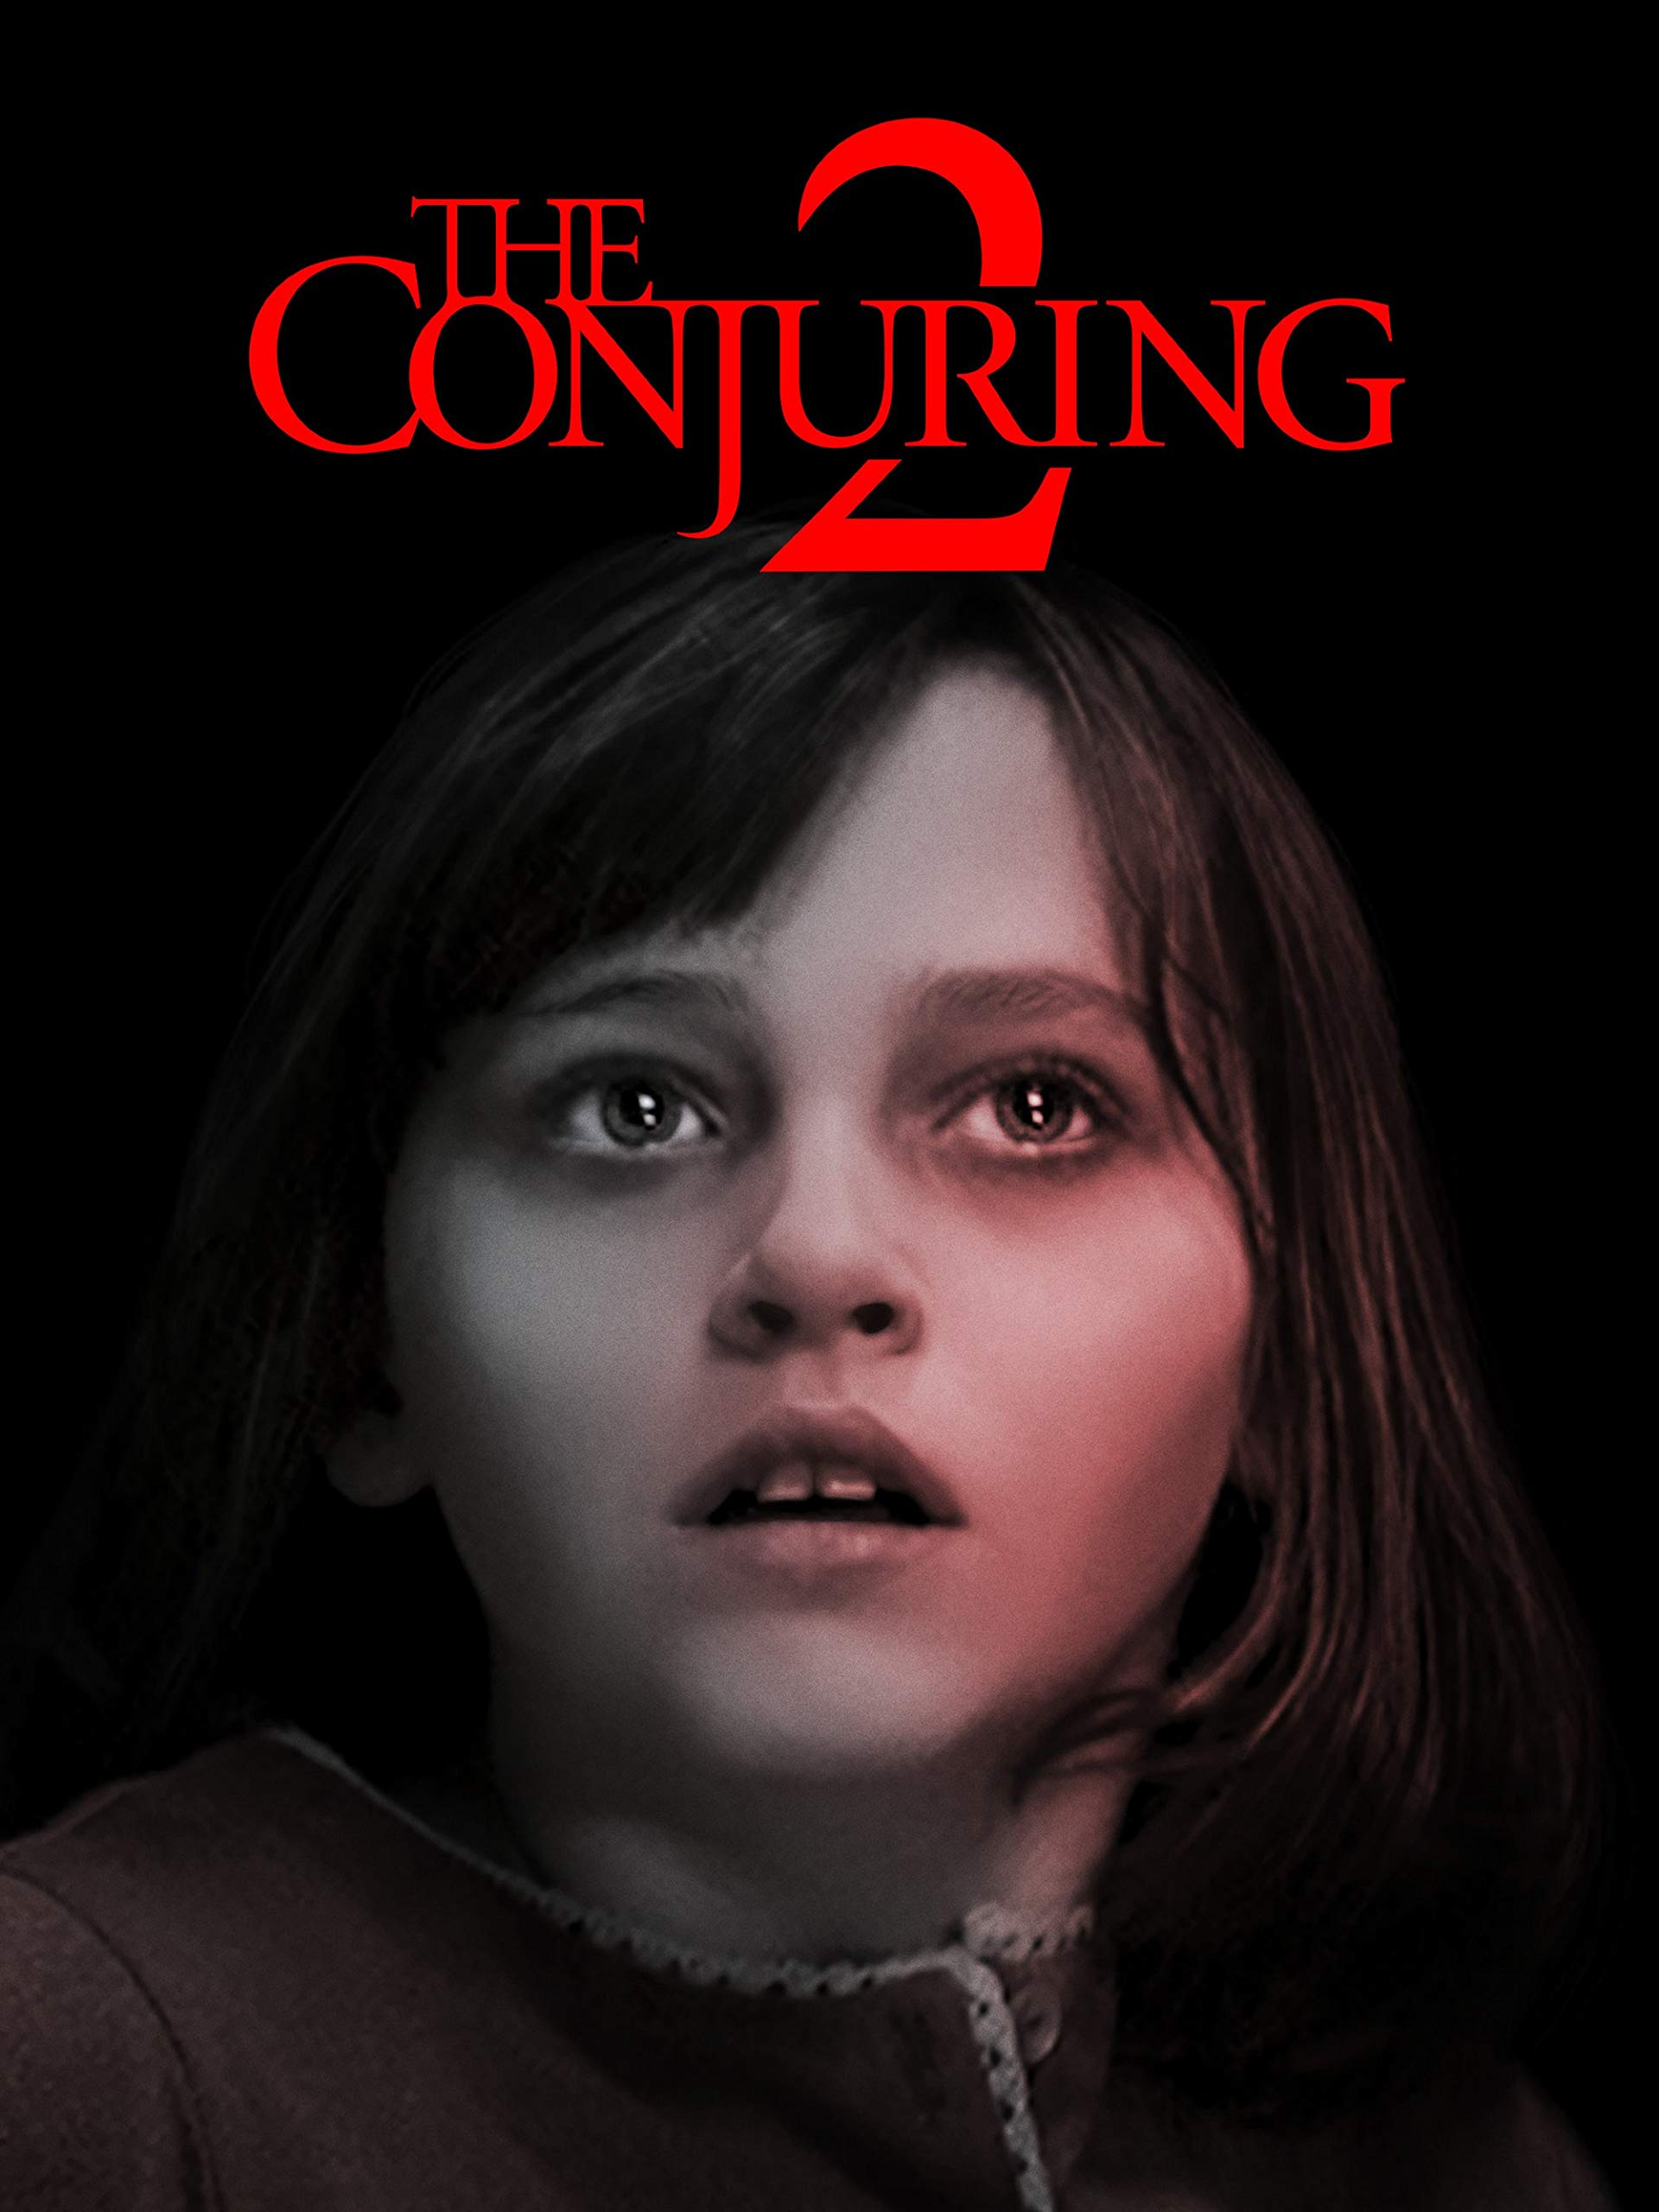 conjuring 2 movie free download in telugu